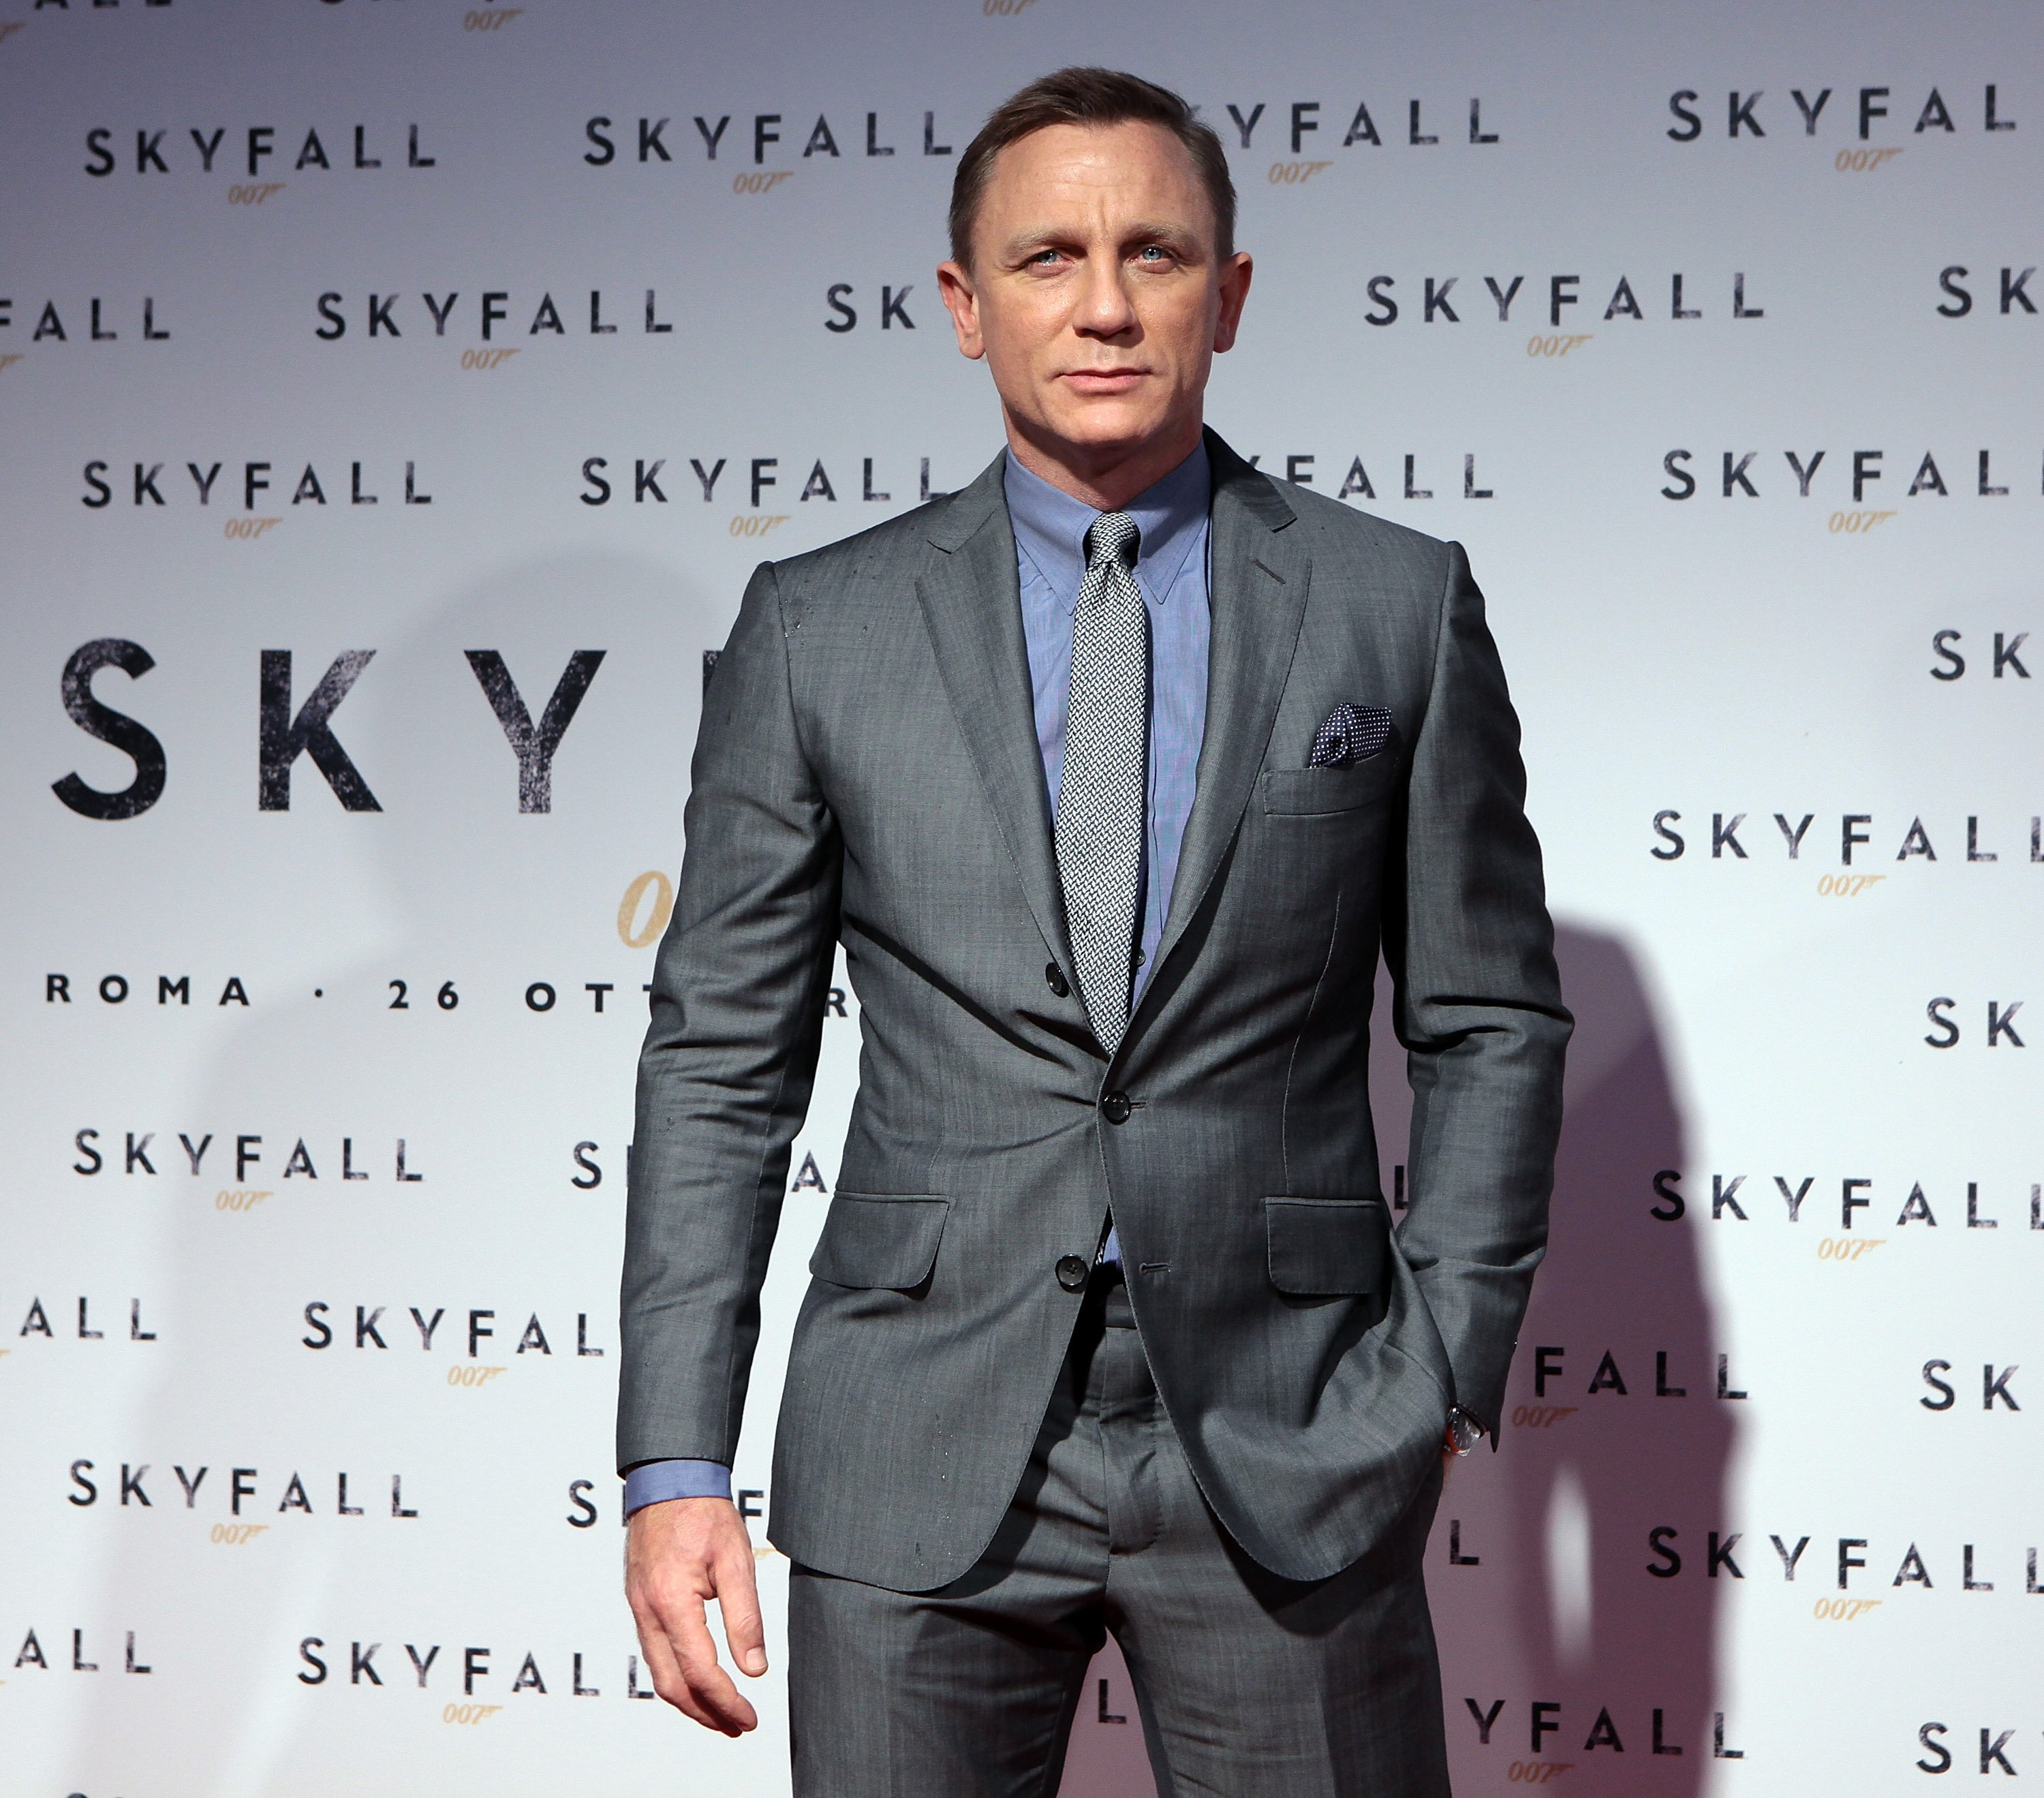 """Daniel Craig attends the premiere of """"Skyfall"""" in Rome, Italy on October 26, 2012   Photo: Getty Images"""